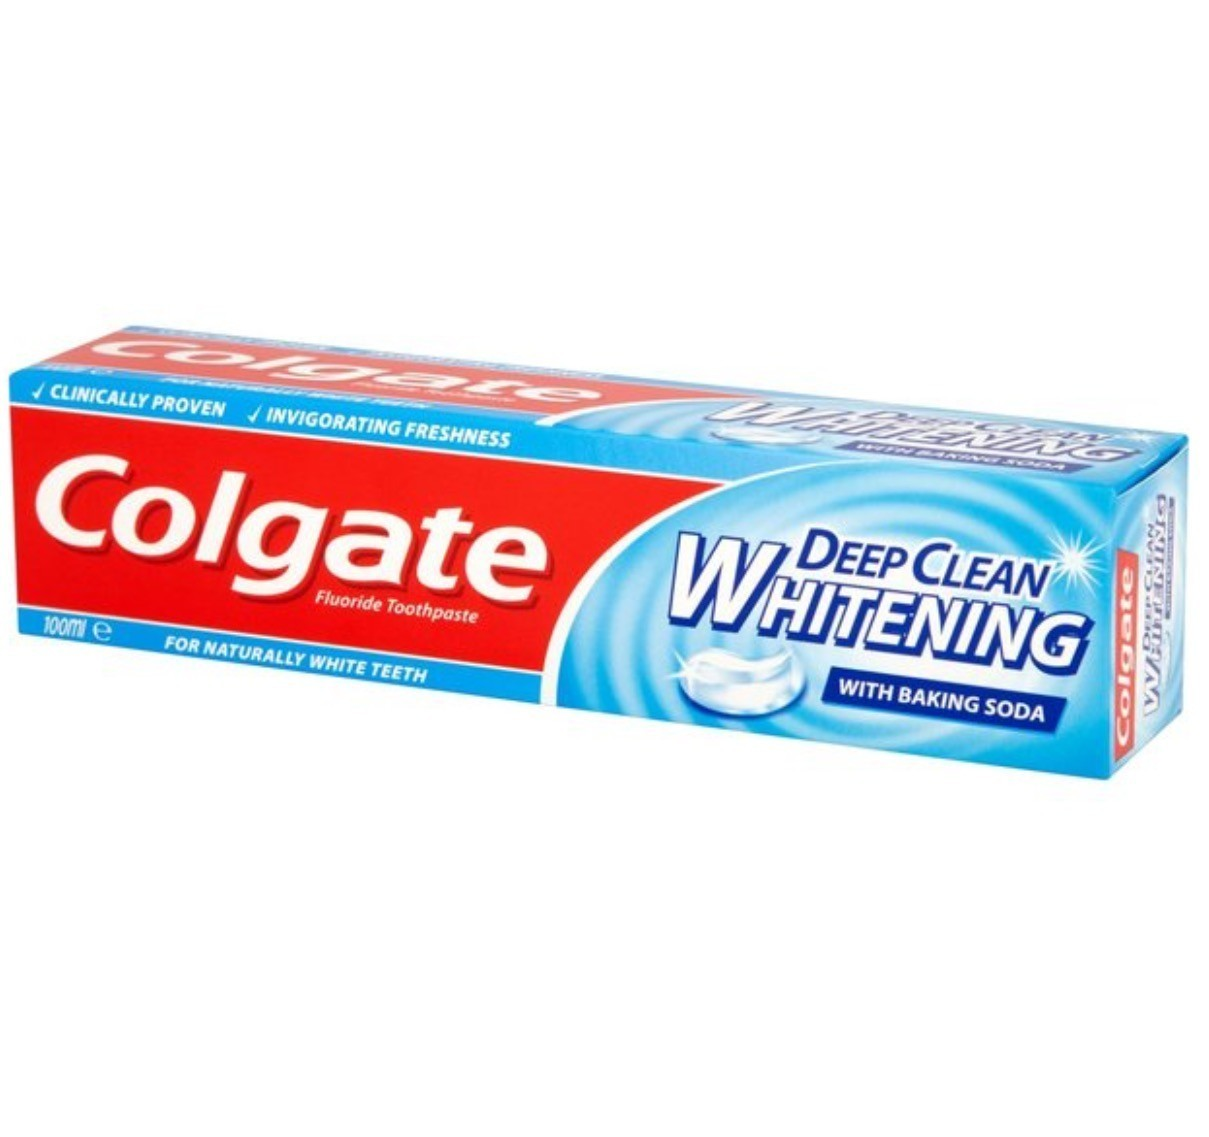 colgate deep clean.jpg